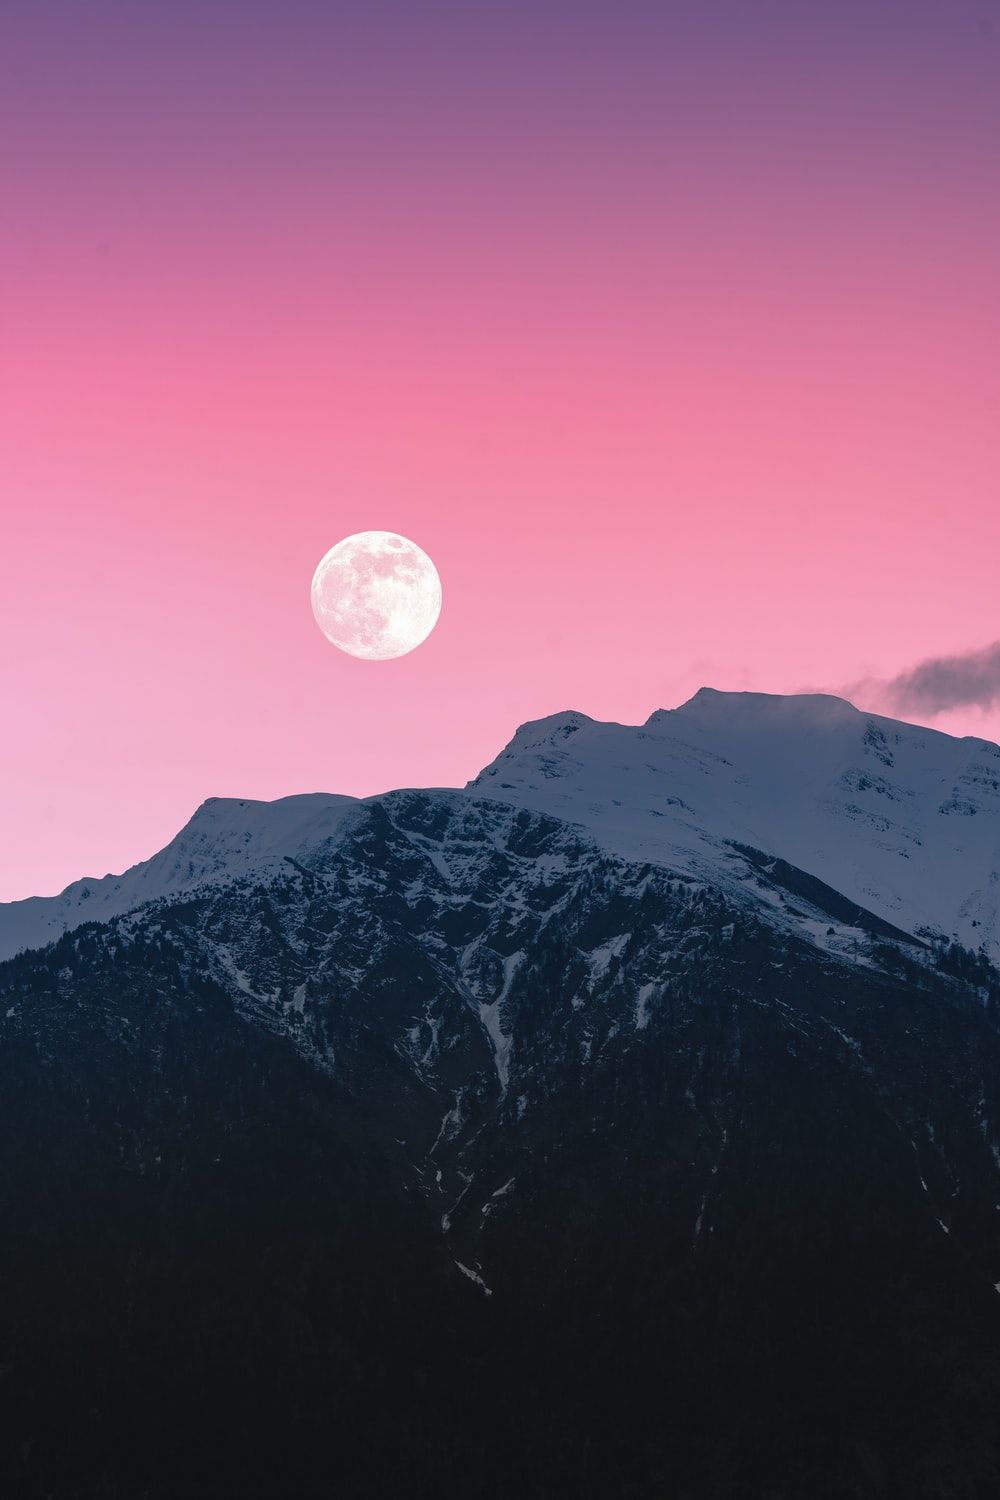 snow covered mountain under full moon